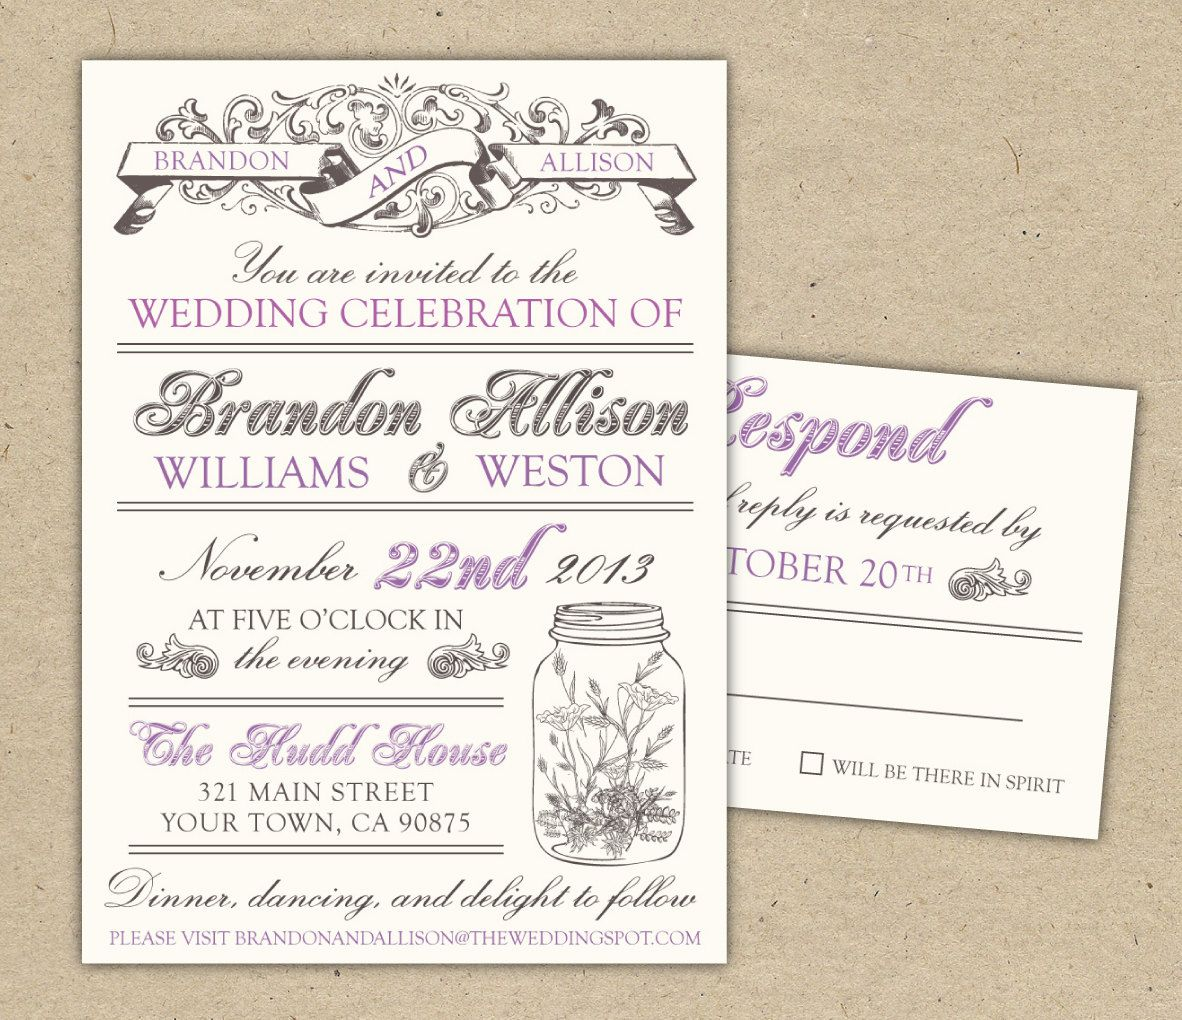 Printable Wedding Invitations: Free Templates For Invitations